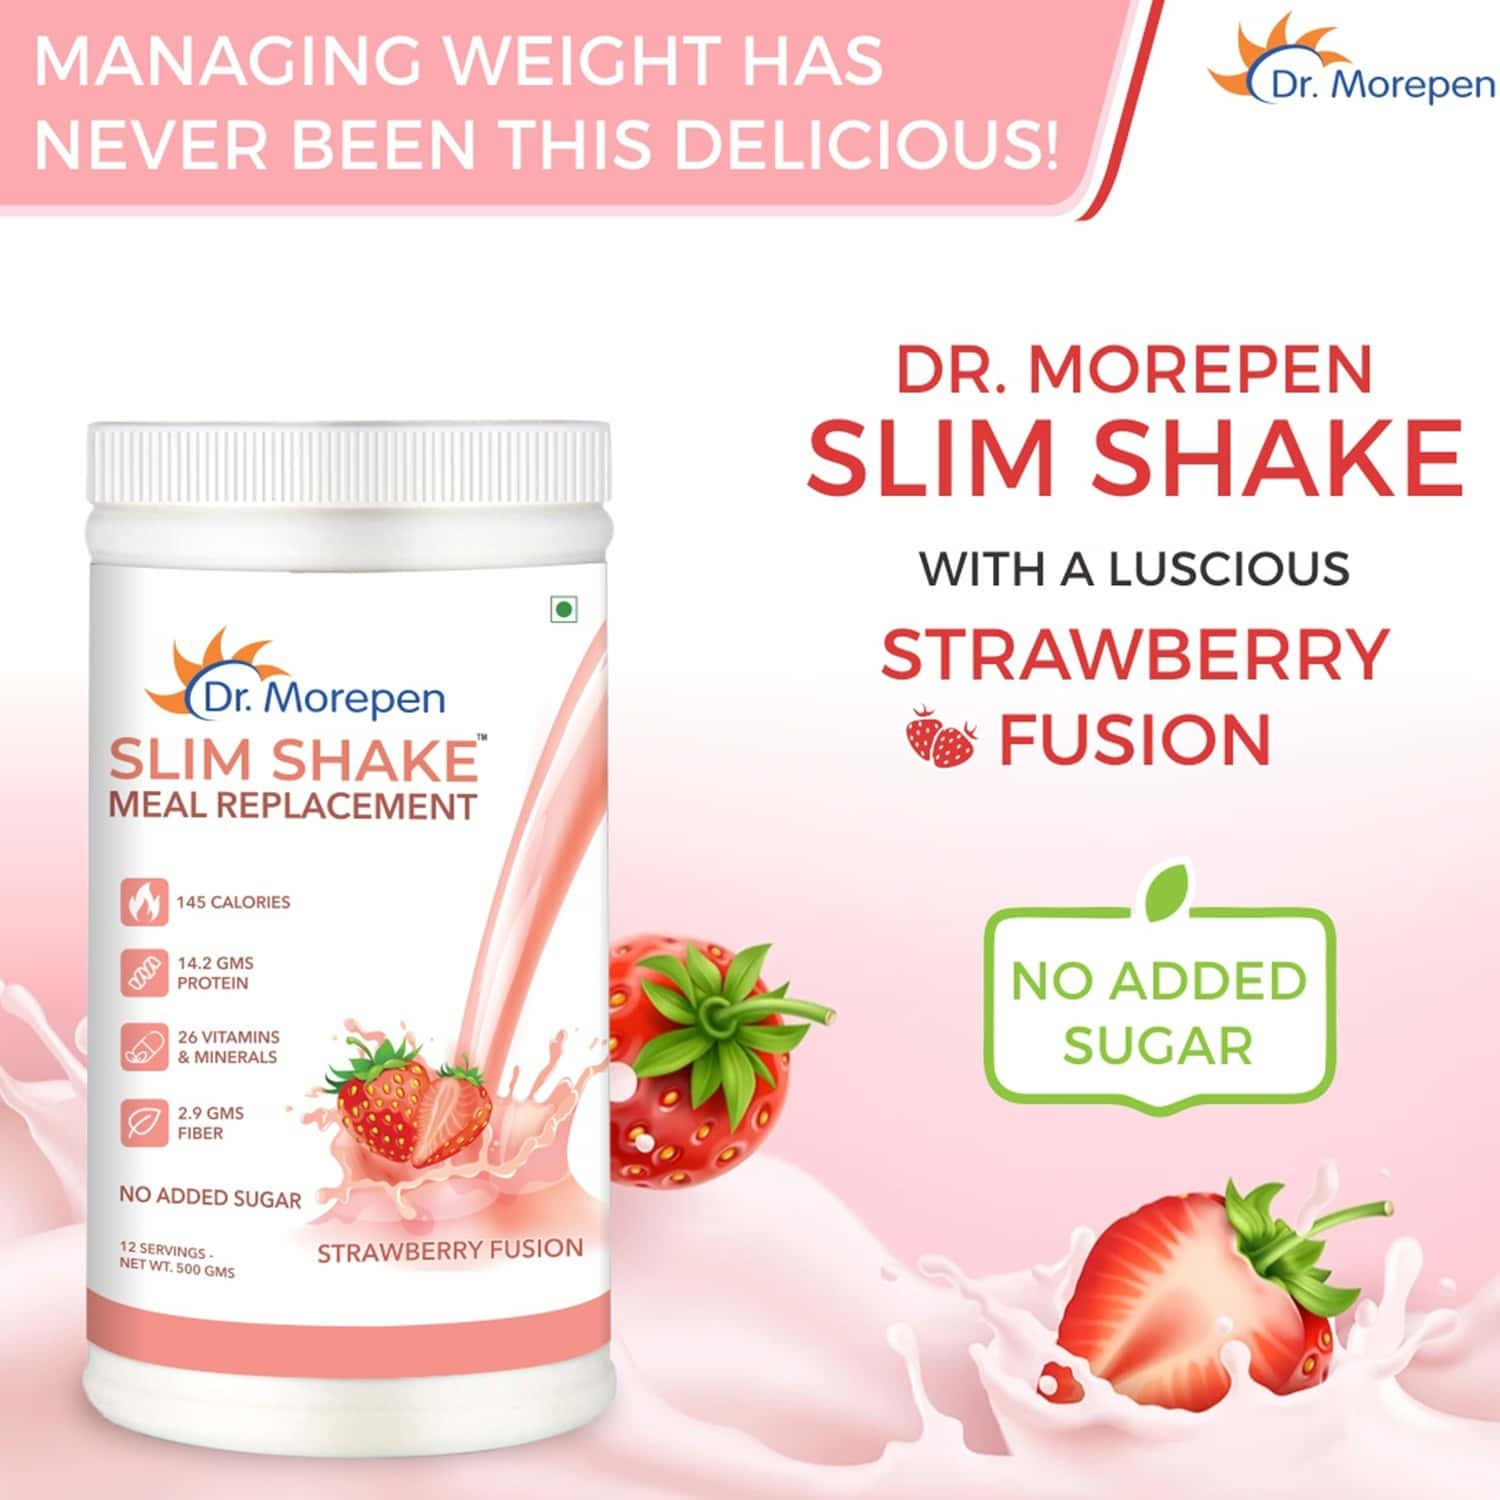 Dr. Morepen Slim Shake For Weight Management   Meal Replacement Protein Powder   Strawberry Flavour - 500g